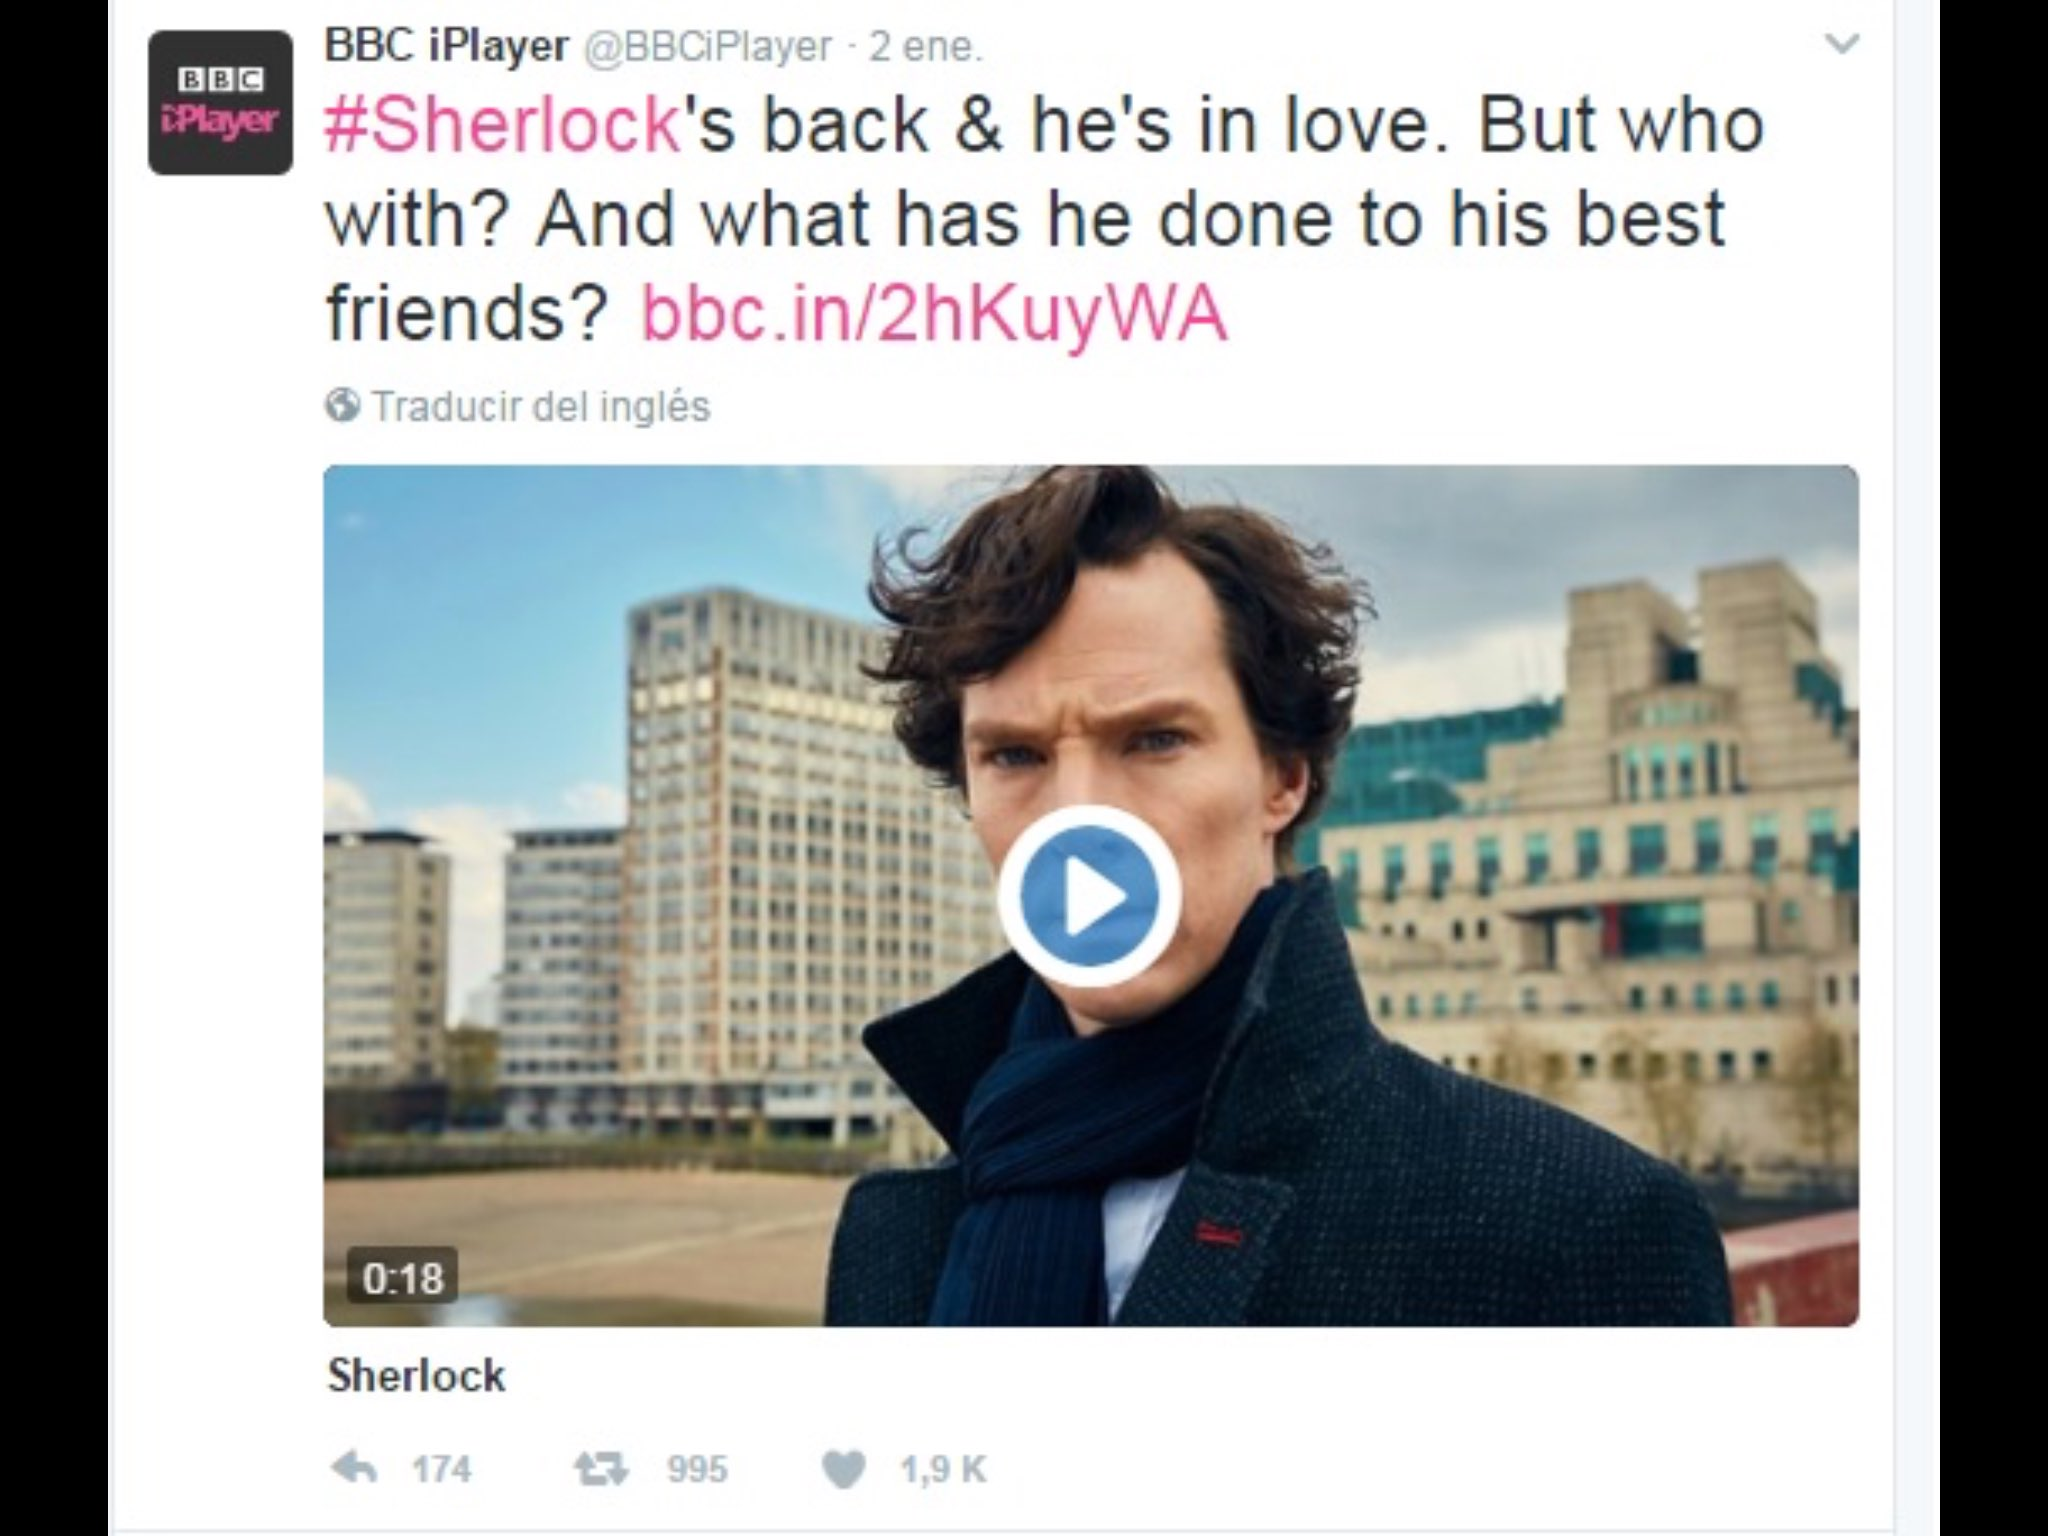 what was this about because there was no 'in love' for Sherlock this season. This was clearly to get me to watch.  #queerbaiting #norbury https://t.co/lcc6lQSqd3